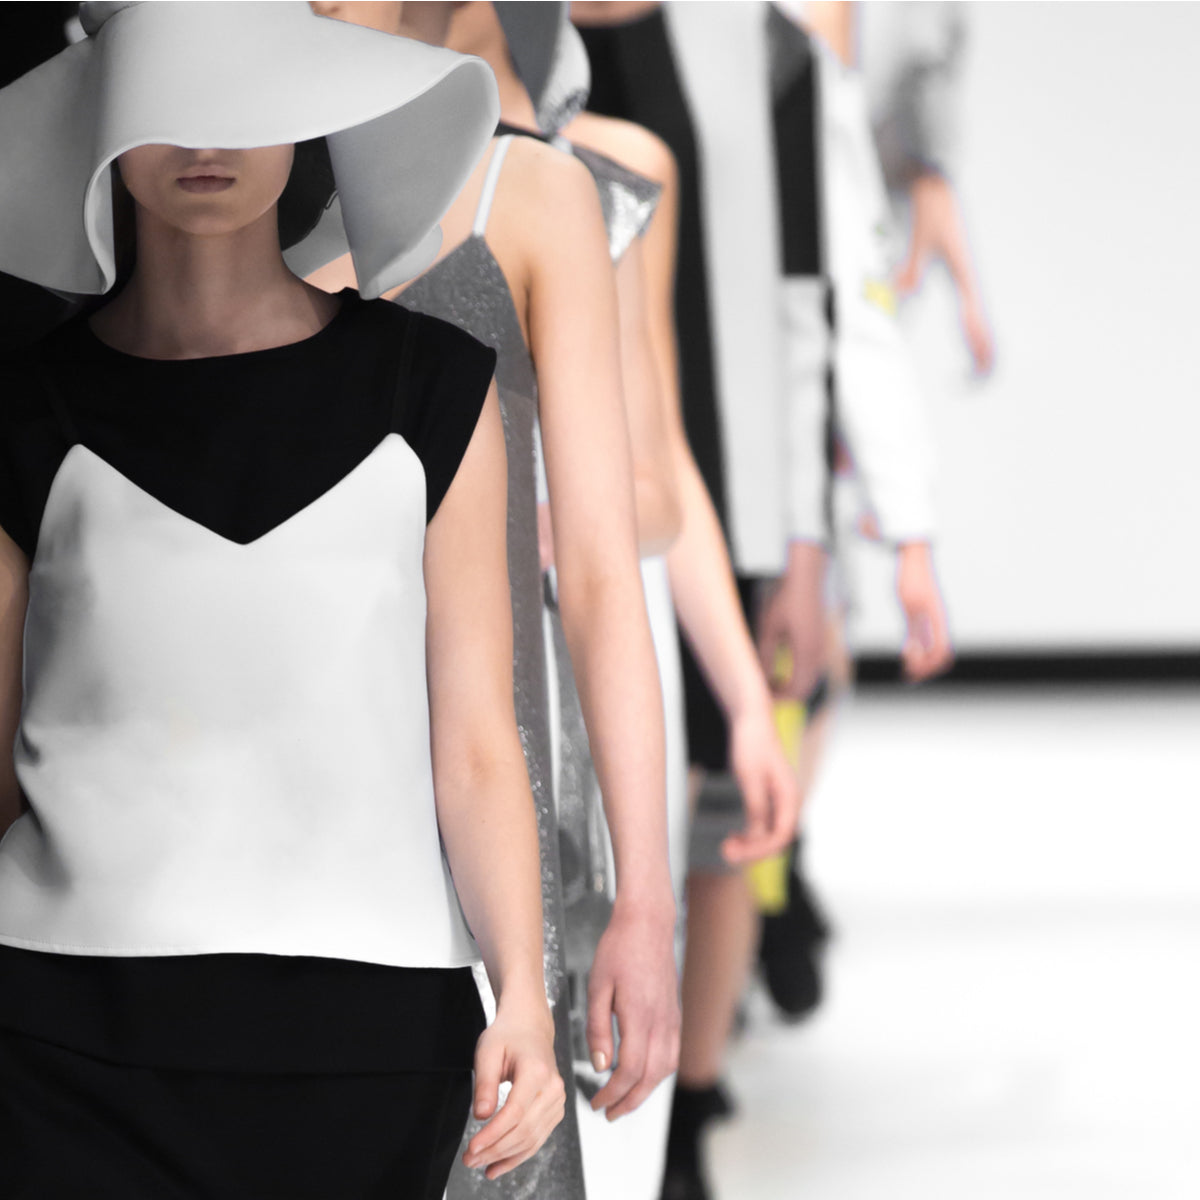 The Young Fashion Designer Programme